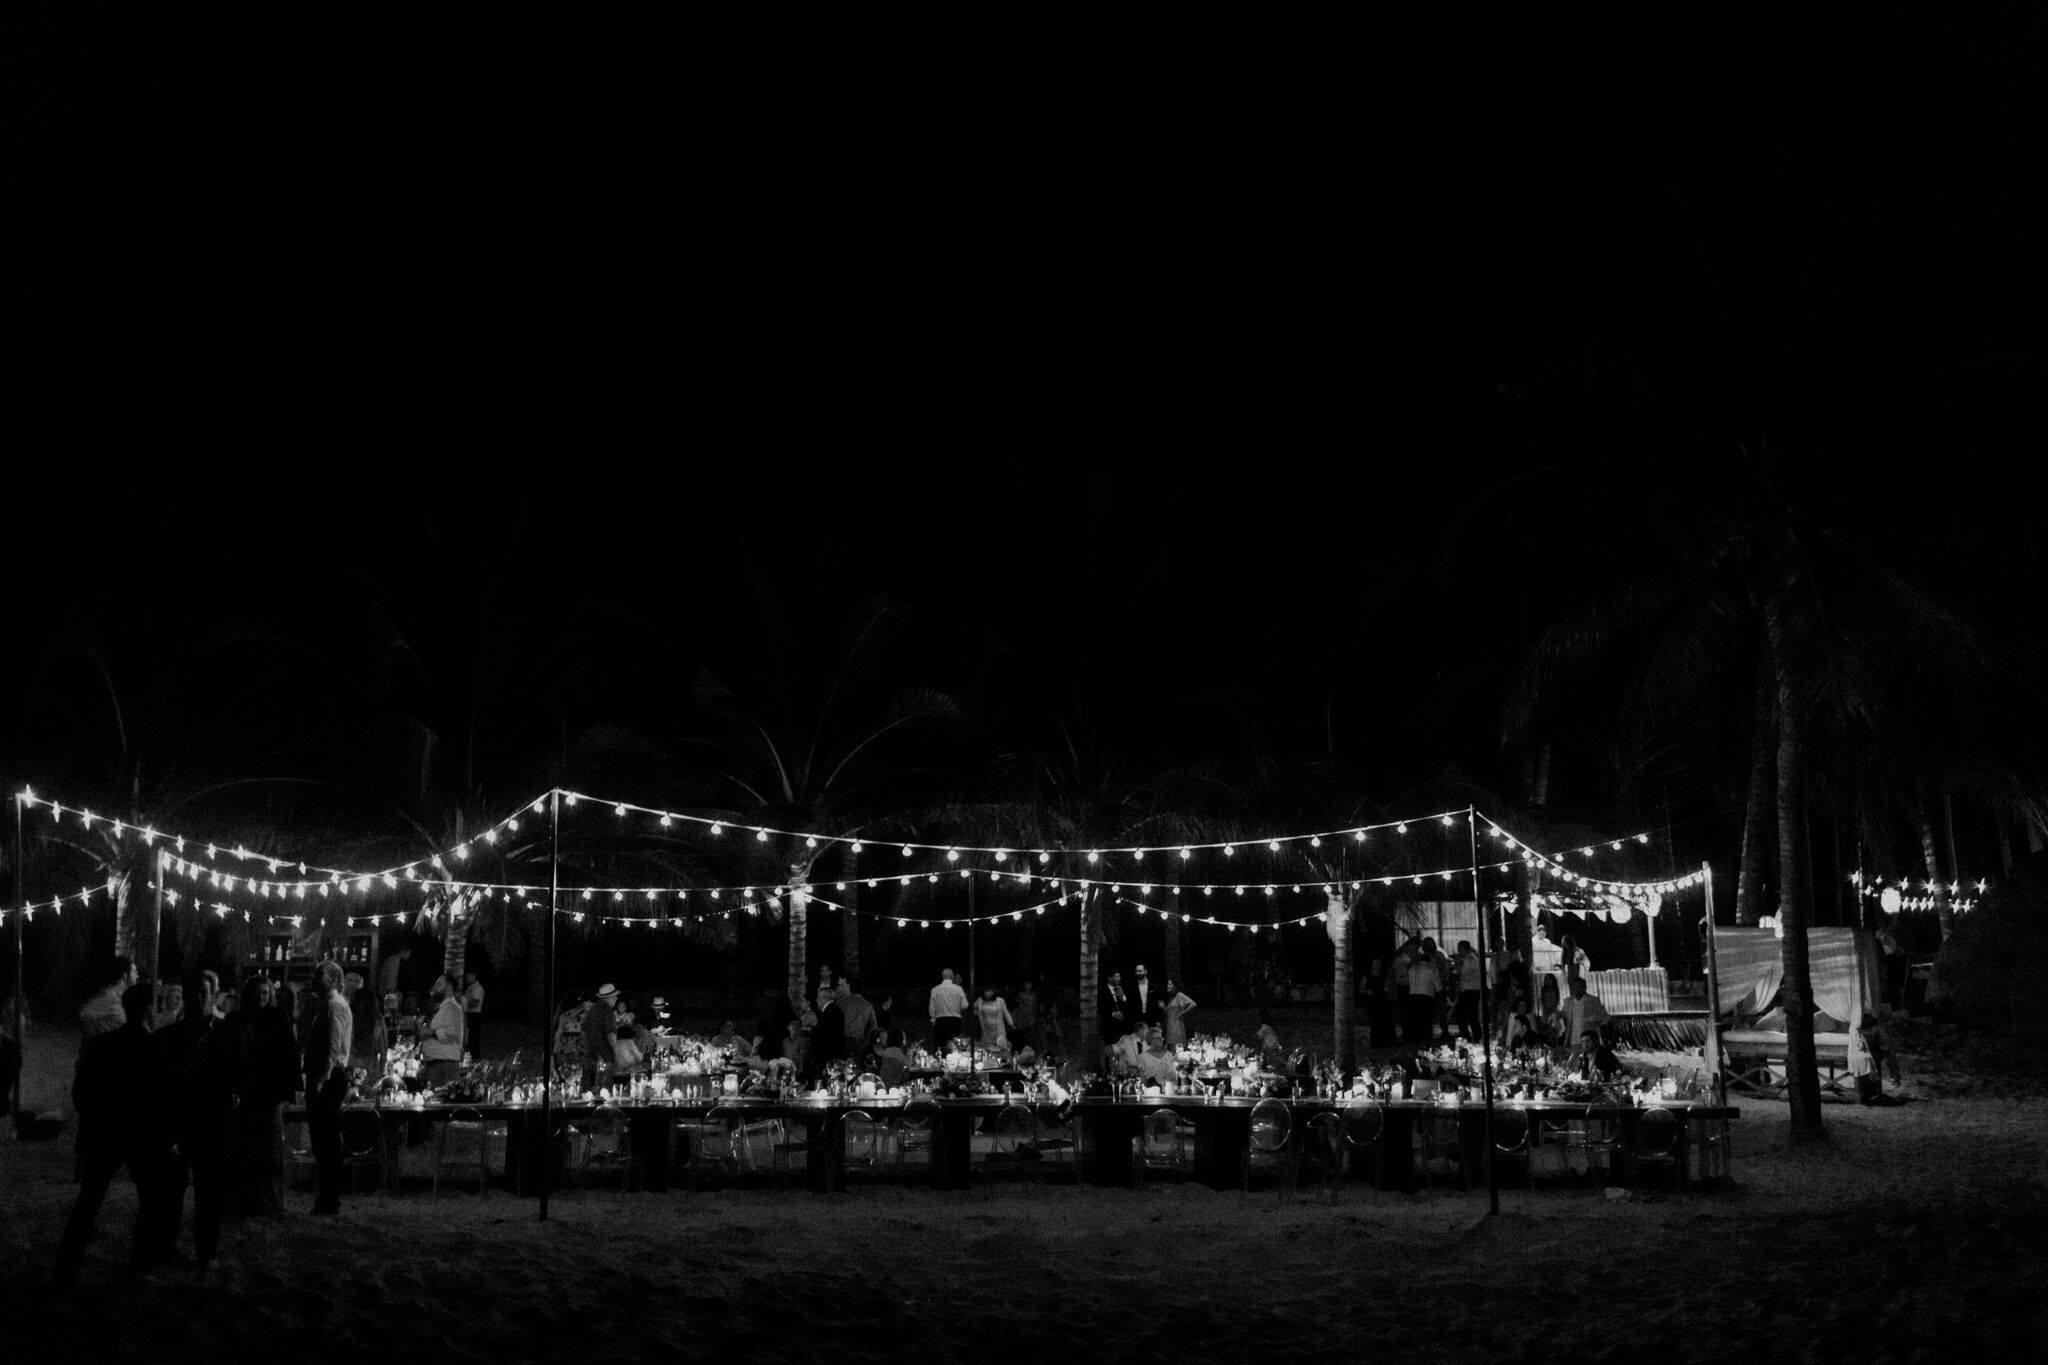 brit-julio-reception-beach-lighting-bw.jpg